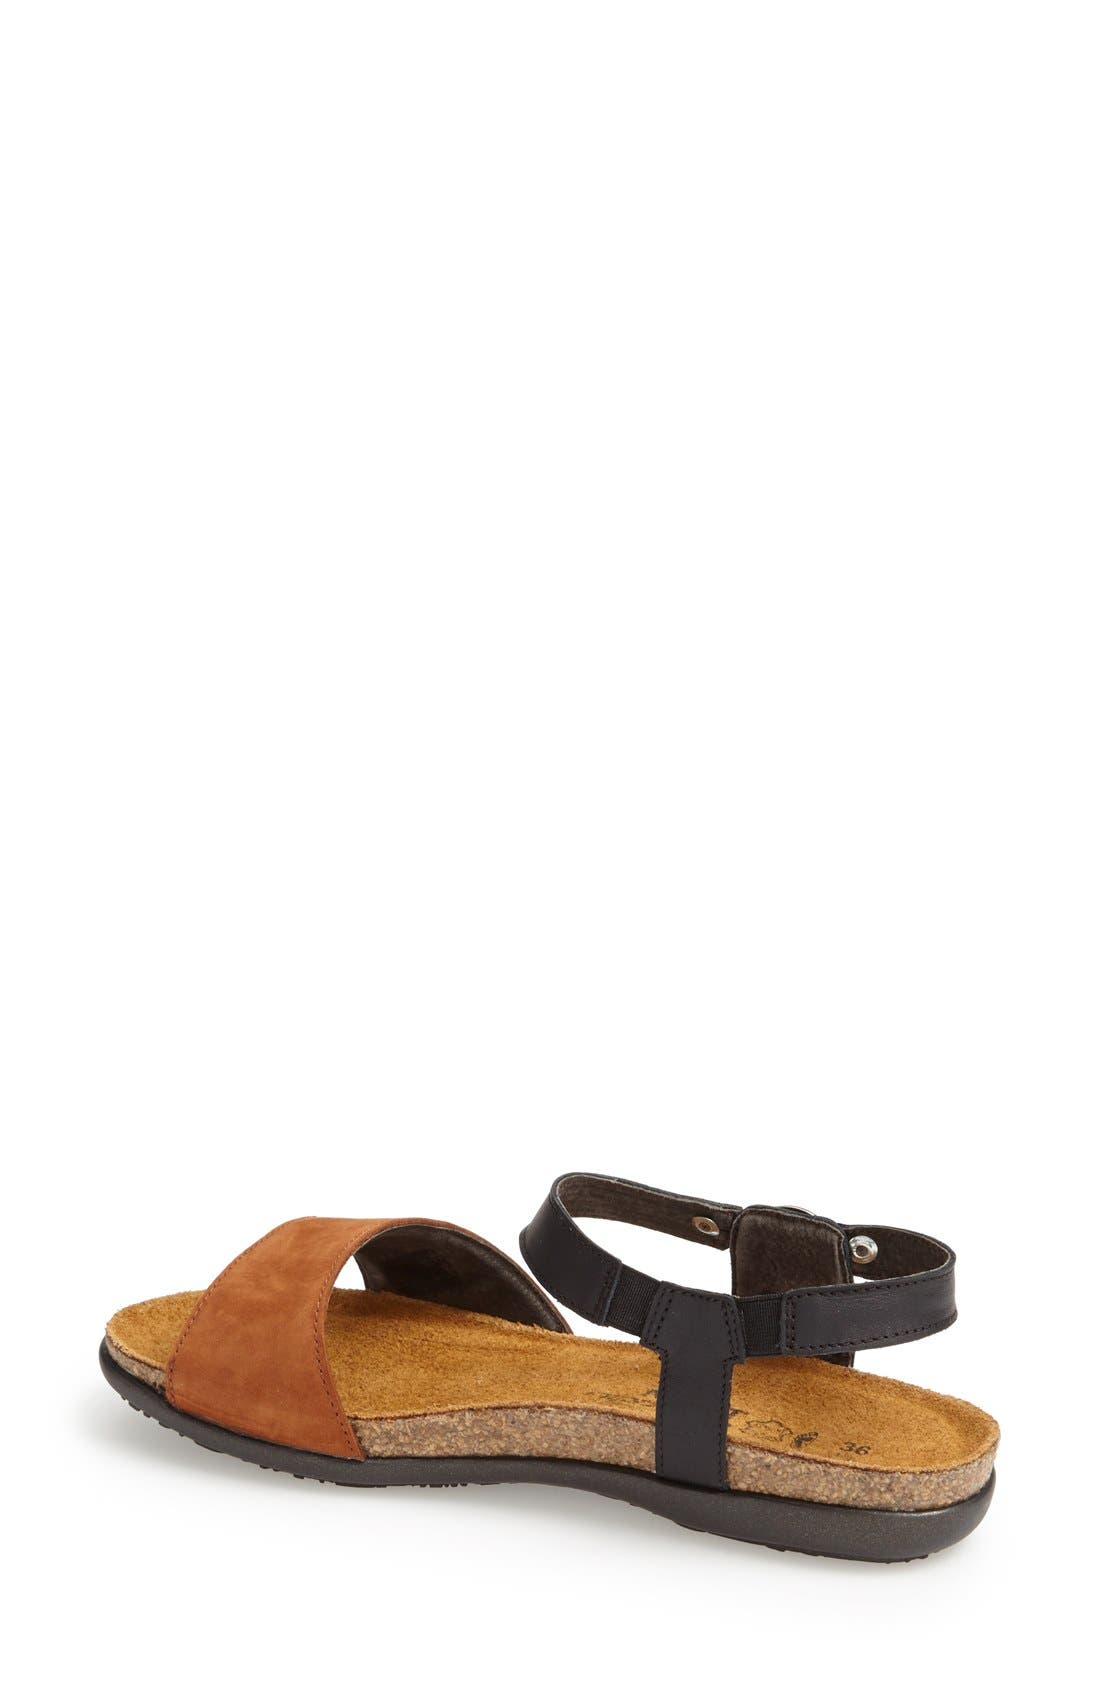 'Sabrina' Sandal,                             Alternate thumbnail 2, color,                             BLACK/ BROWN